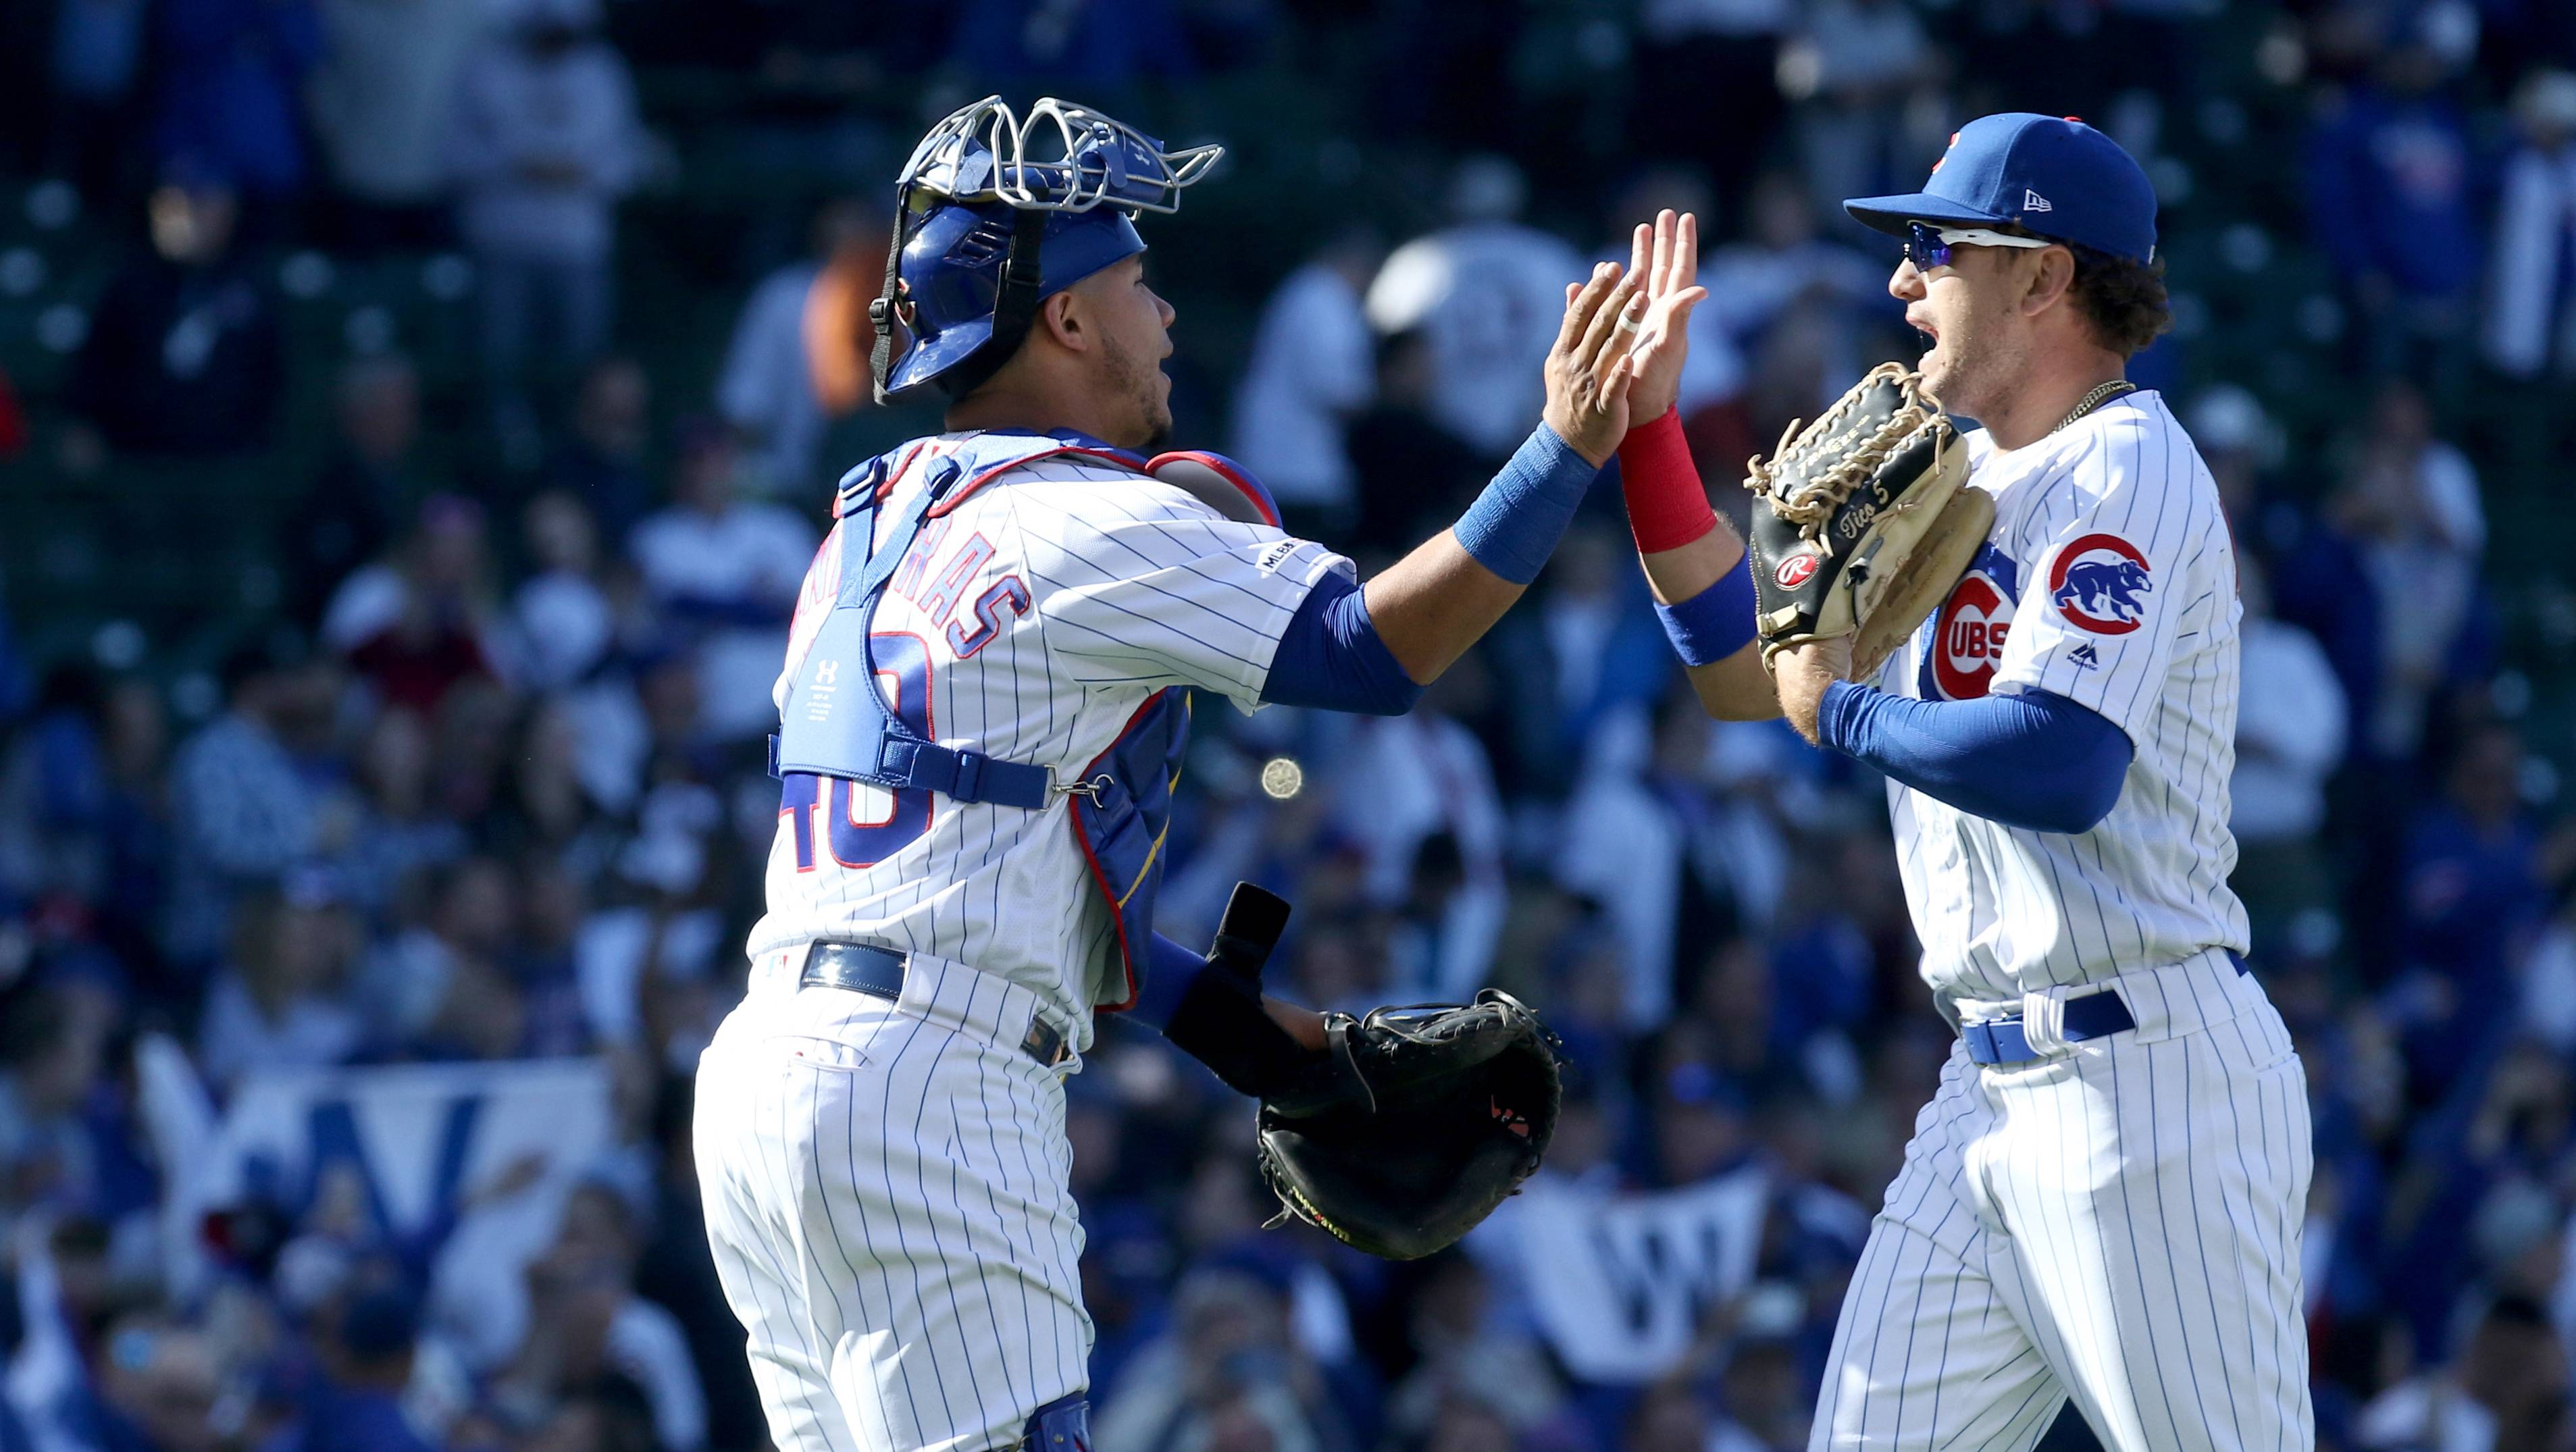 Chicago Cubs catcher Willson Contreras and Chicago Cubs center fielder Albert Almora Jr. congratulate one another after a win.